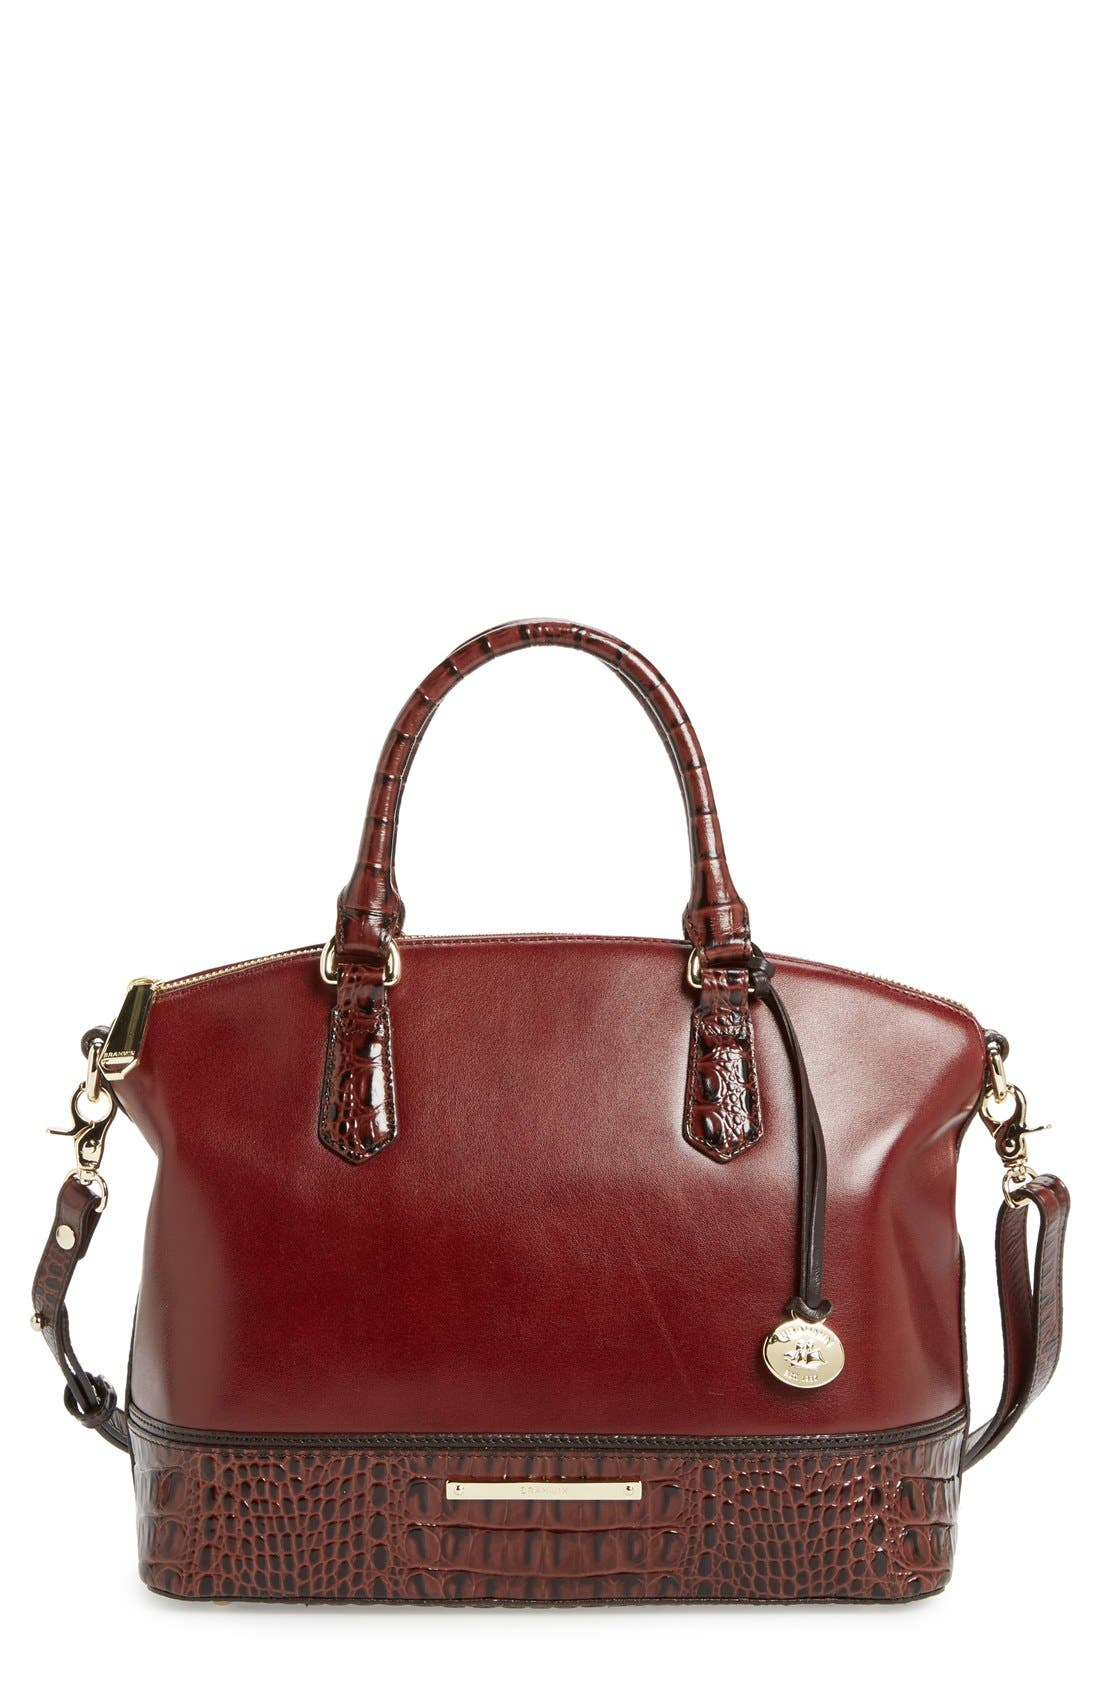 Main Image - Brahmin 'Duxbury' Leather Satchel